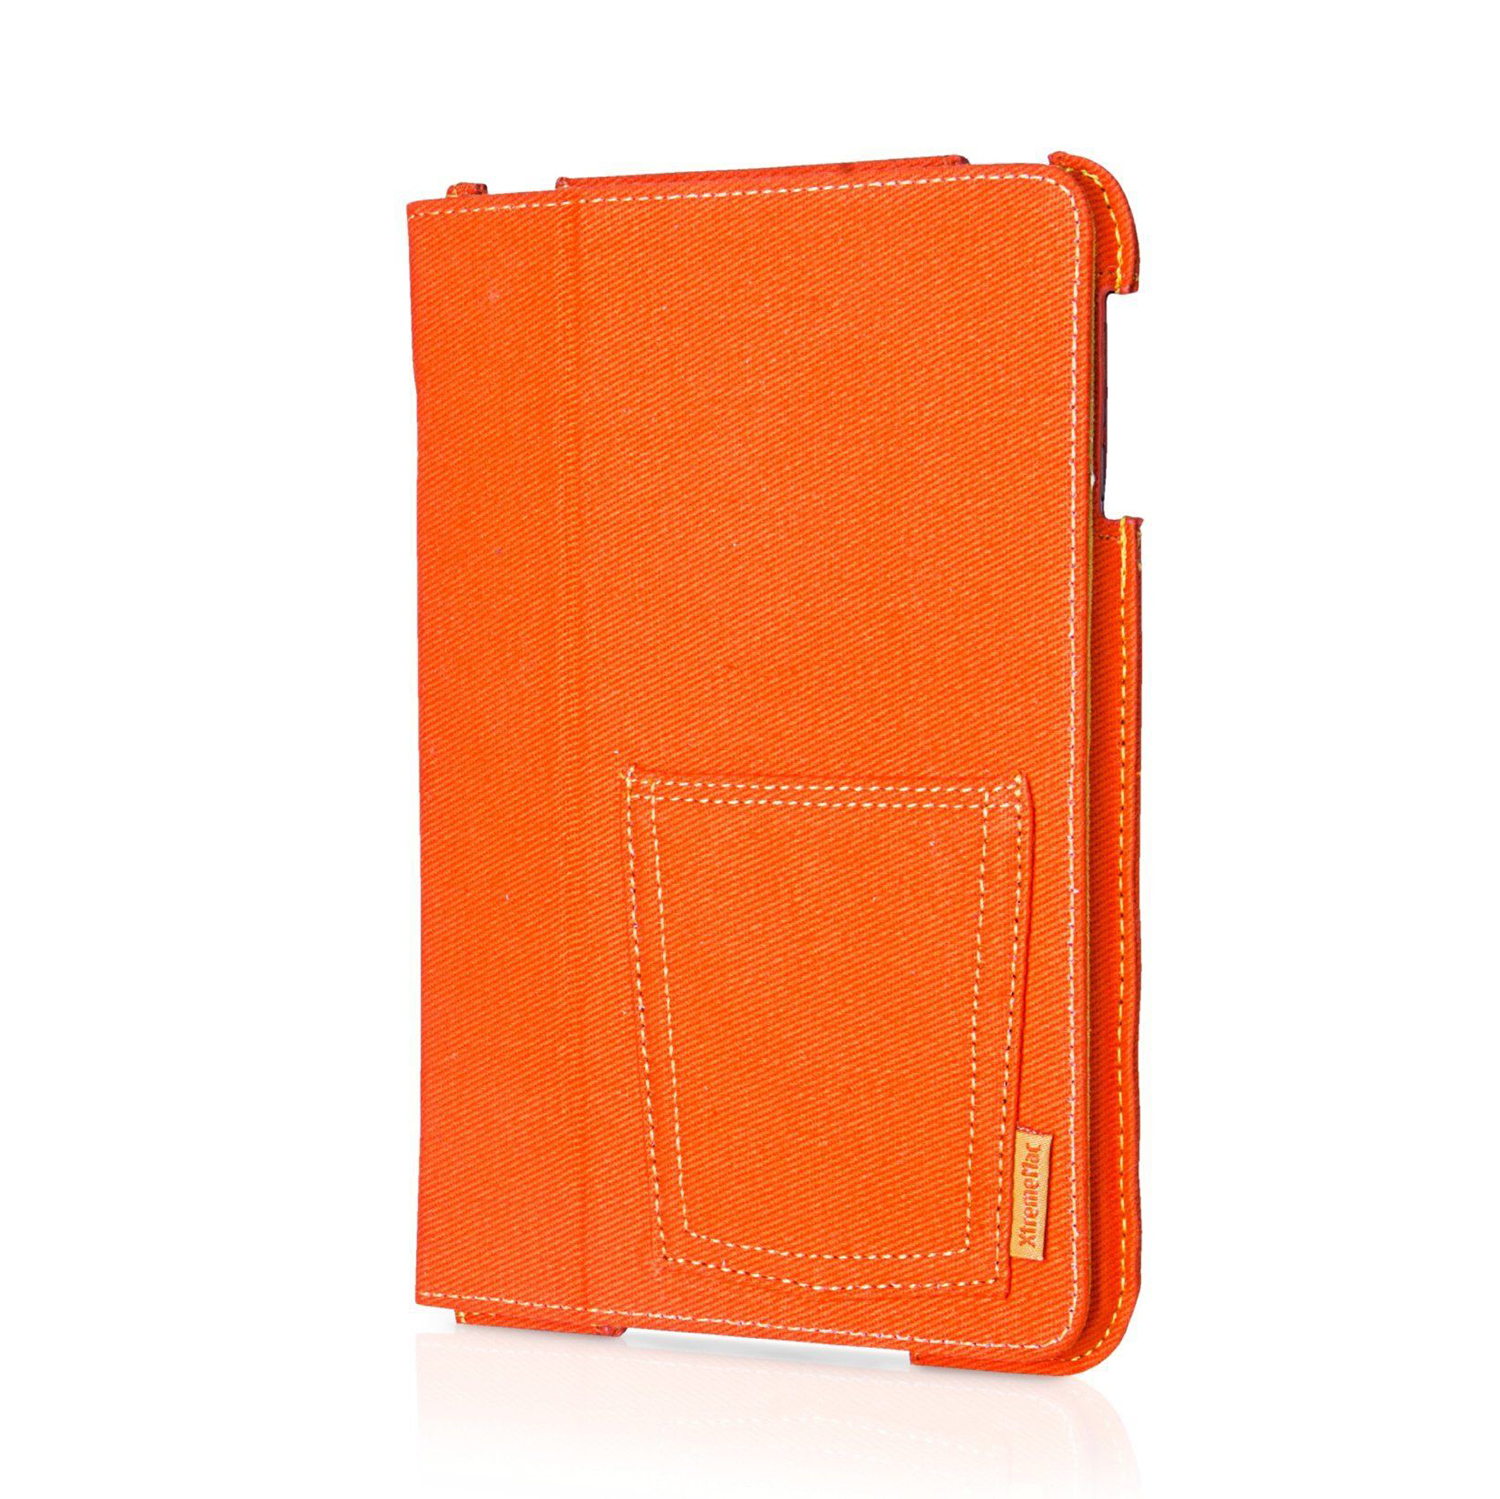 Microfolio Case for iPad mini